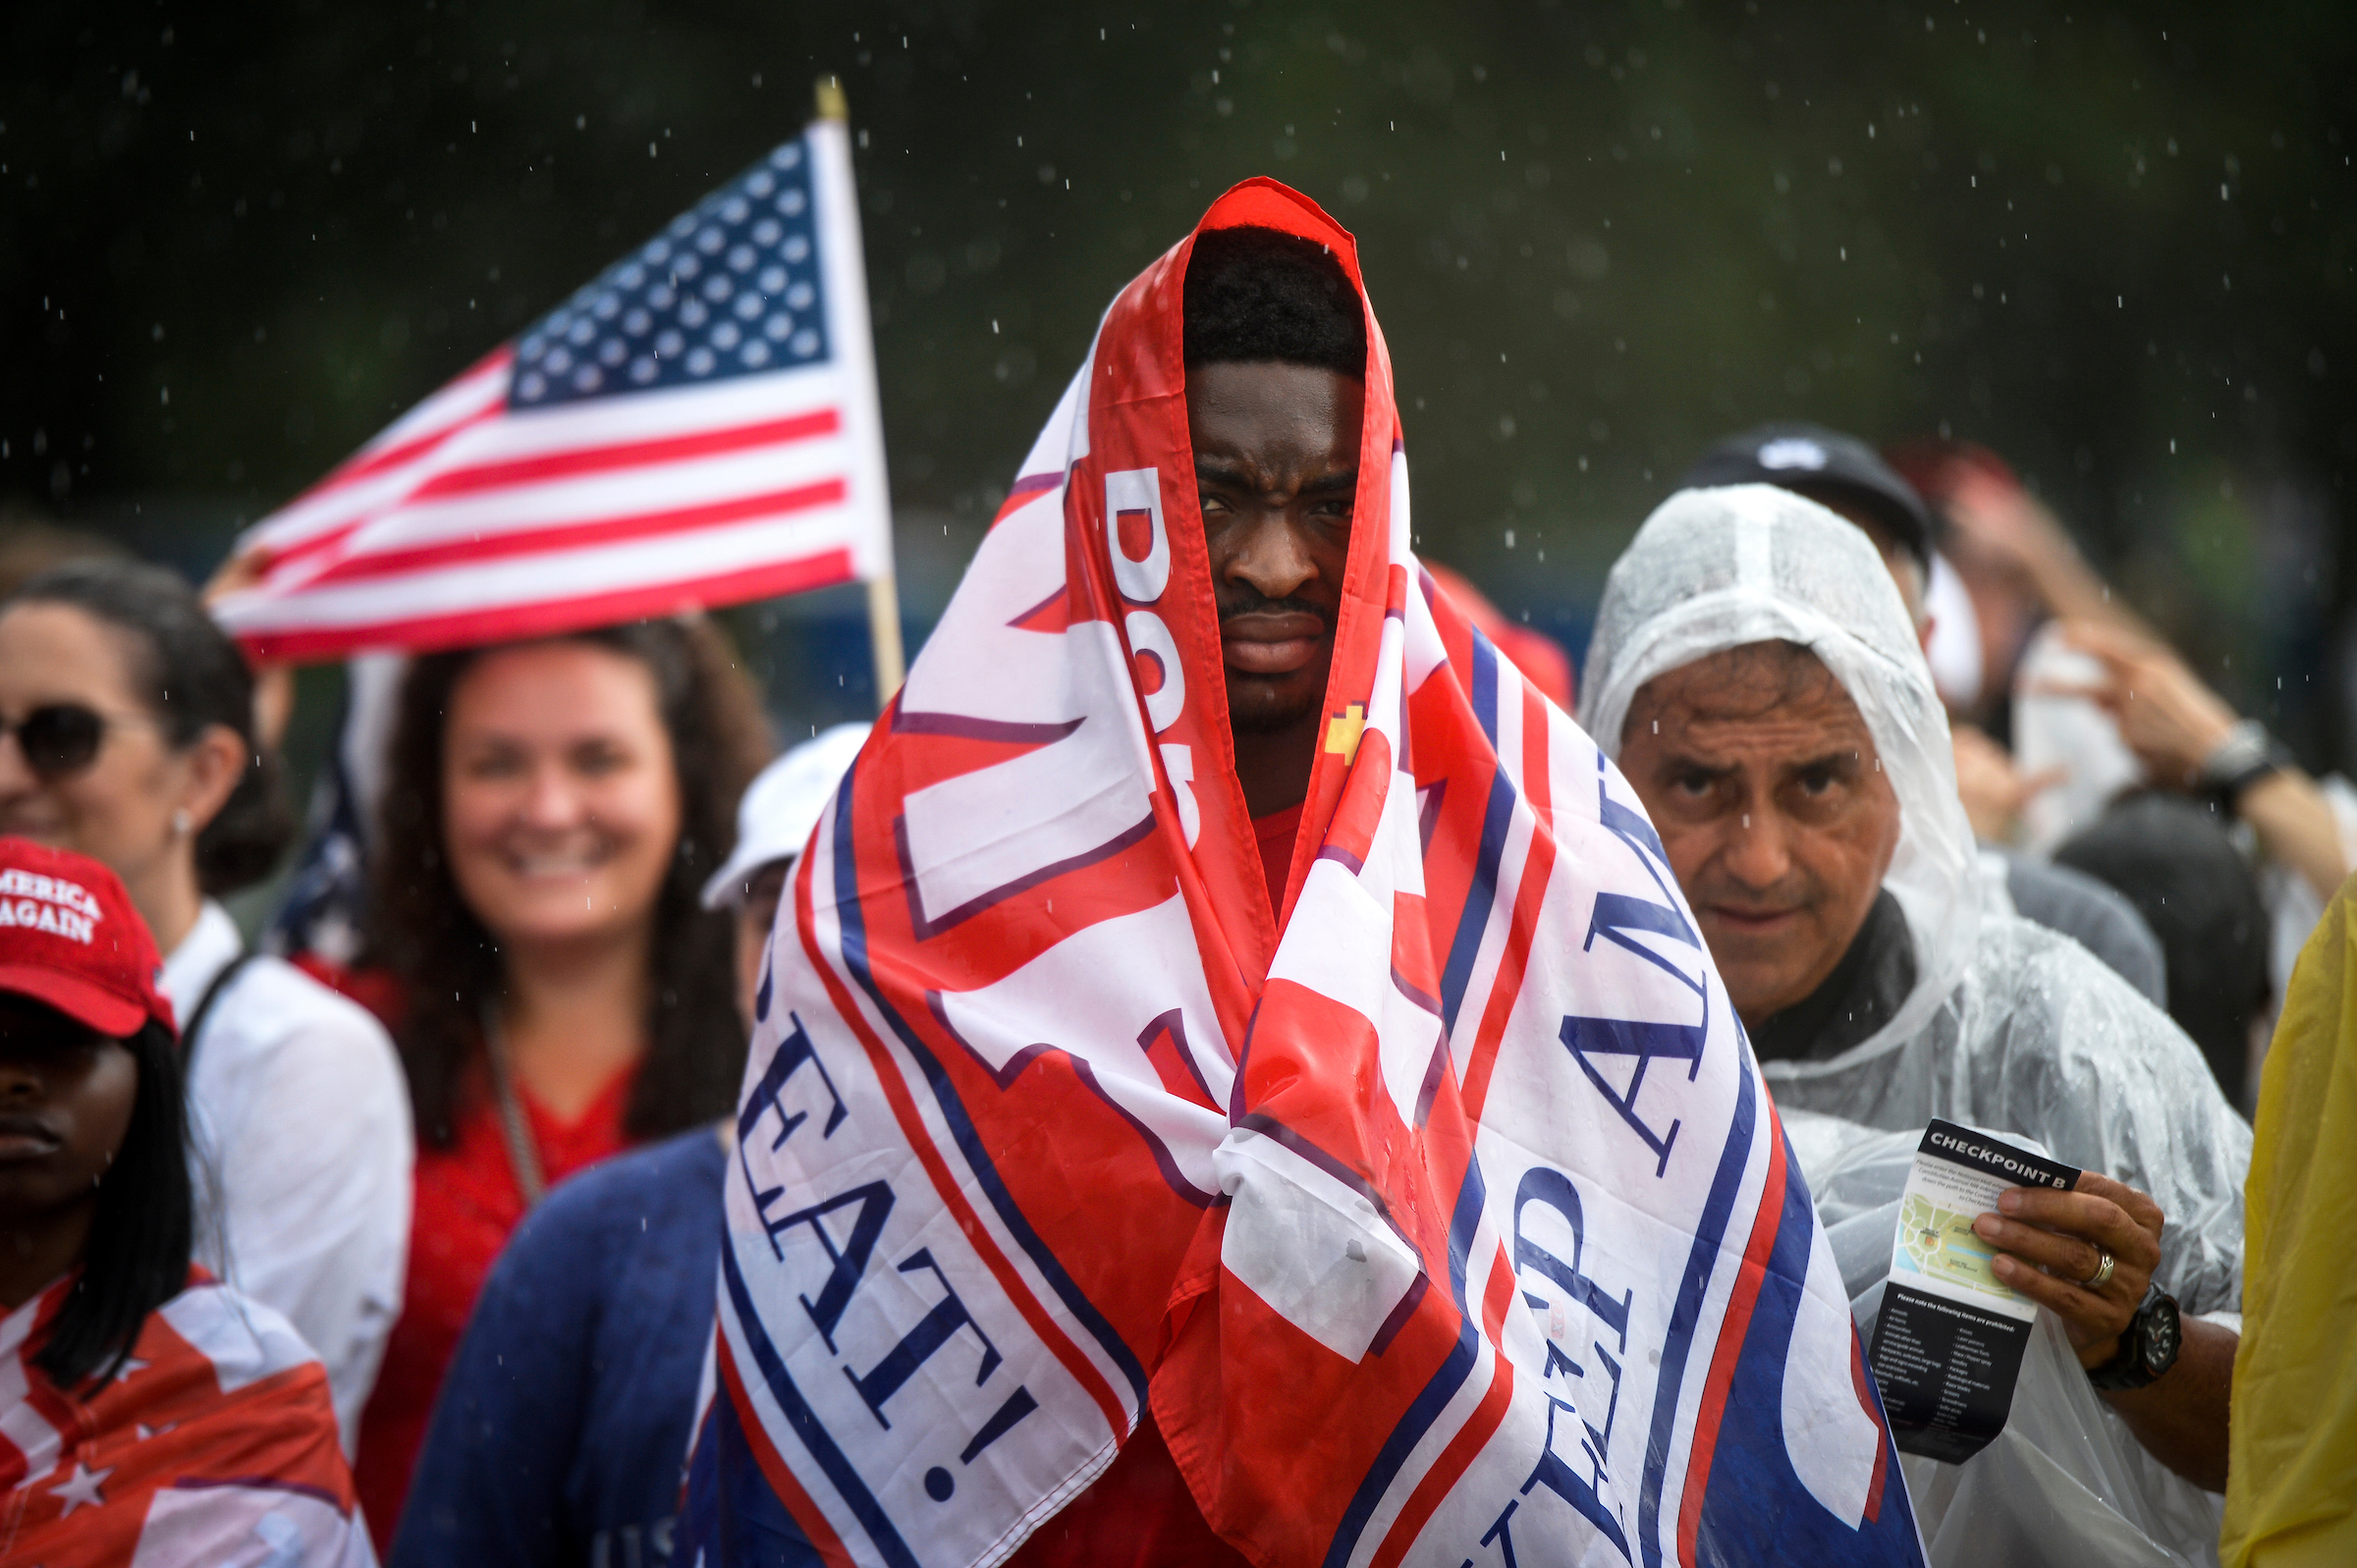 UNITED STATES - JULY 4: People shield themselves from the rain as they celebrate during an event for President Donald Trump's 'Salute to America' as an Independence Day celebration in front of the Lincoln Memorial on Thursday July 4, 2019. (Photo by Caroline Brehman/CQ Roll Call)